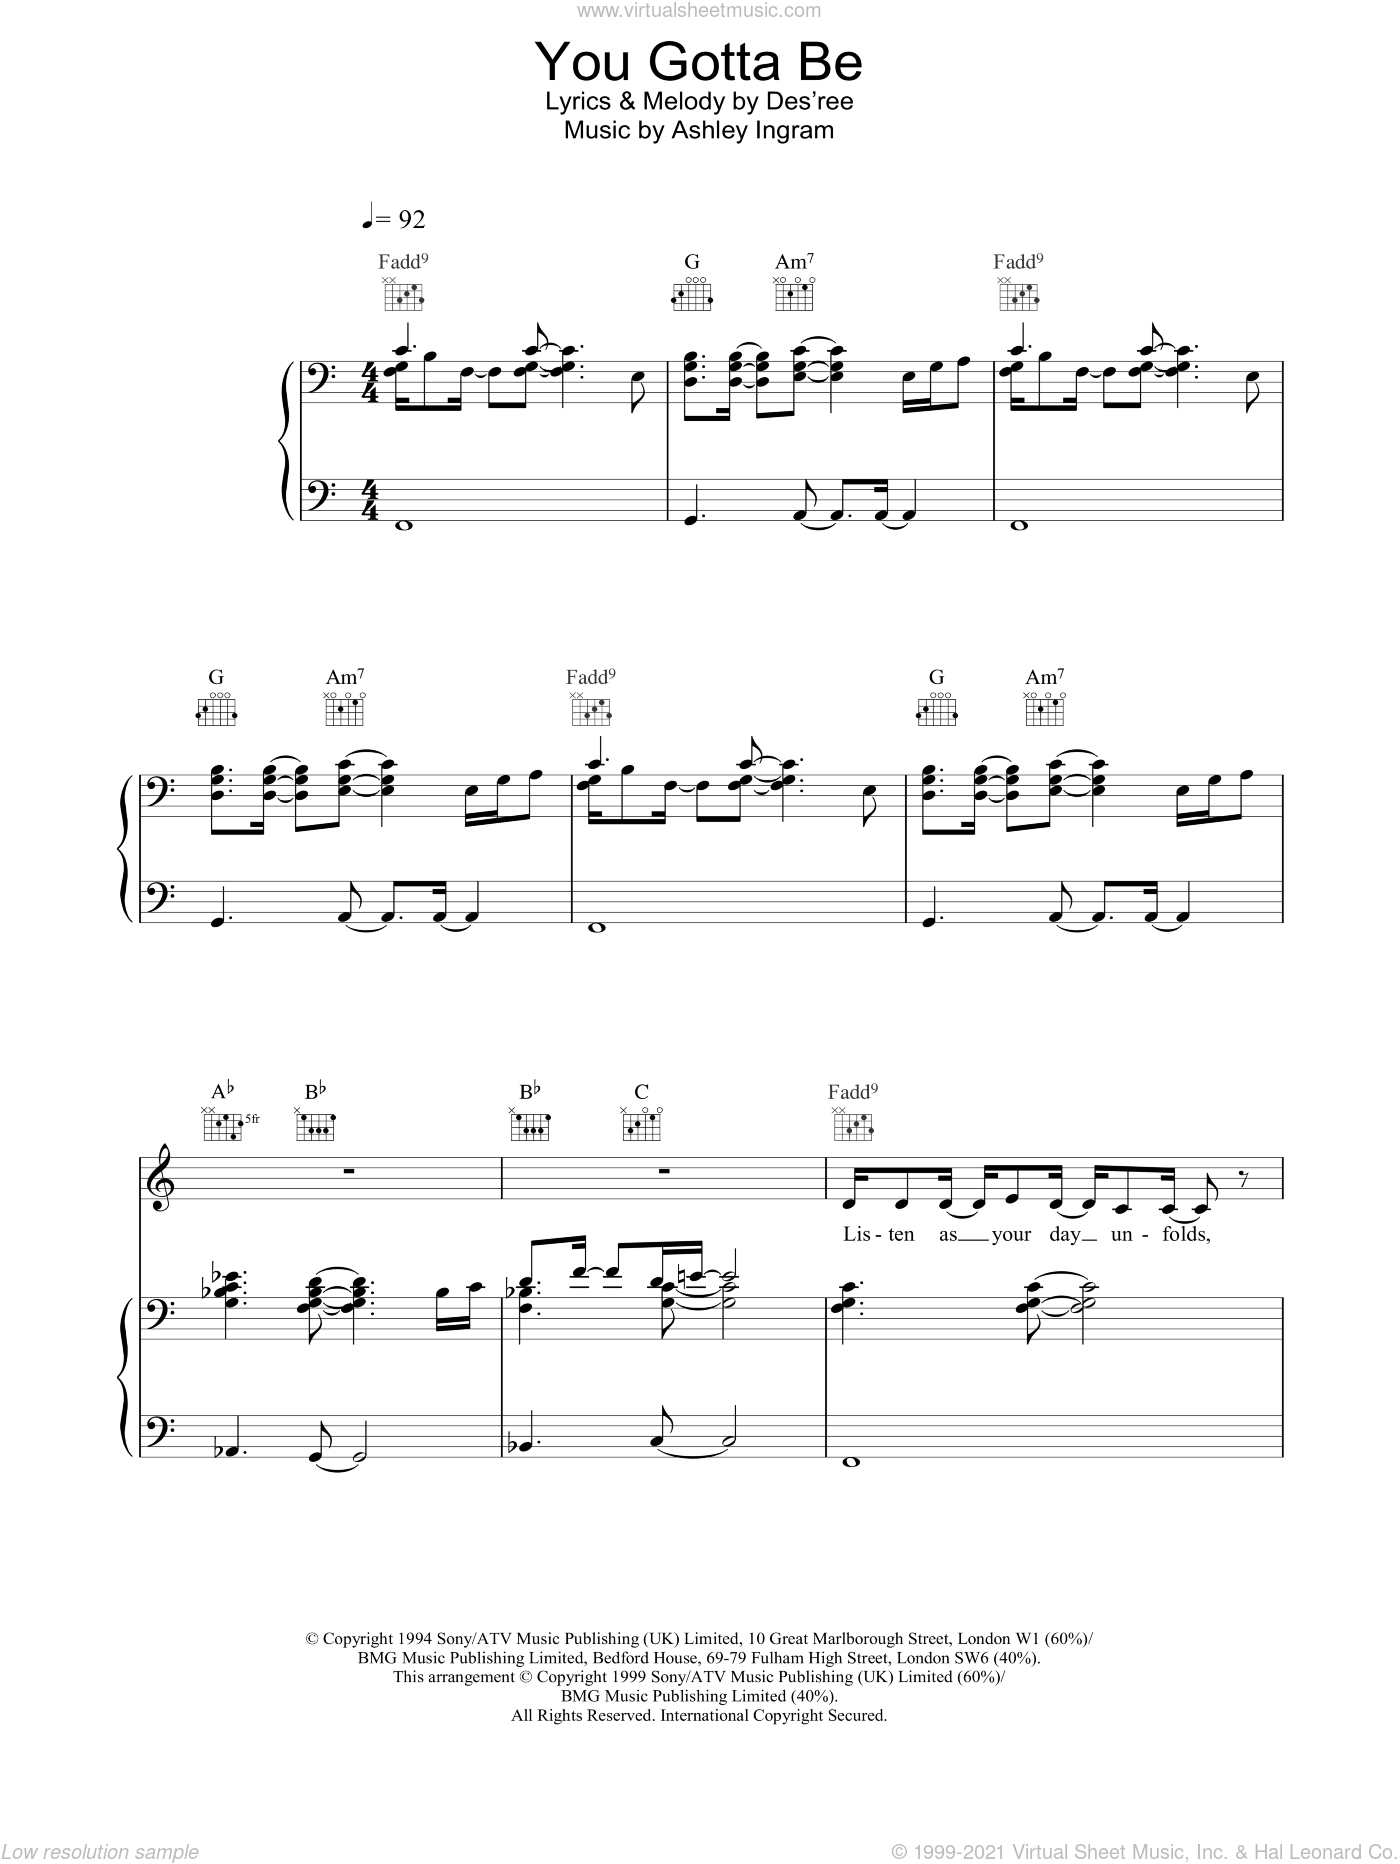 You Gotta Be sheet music for voice, piano or guitar by Des'ree